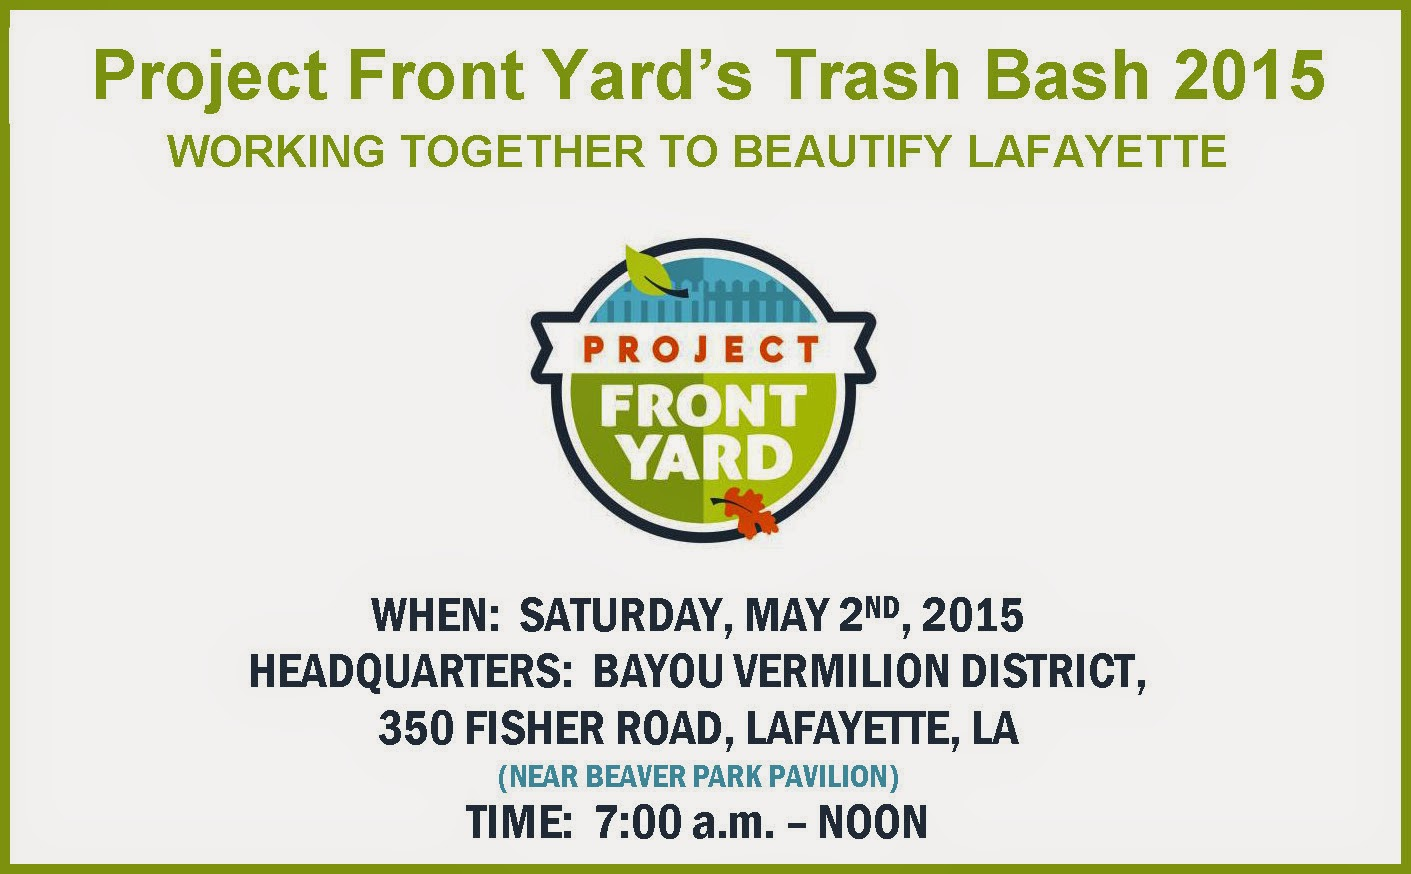 https://www.eventbrite.com/e/project-front-yards-trash-bash-2015-tickets-16003504914